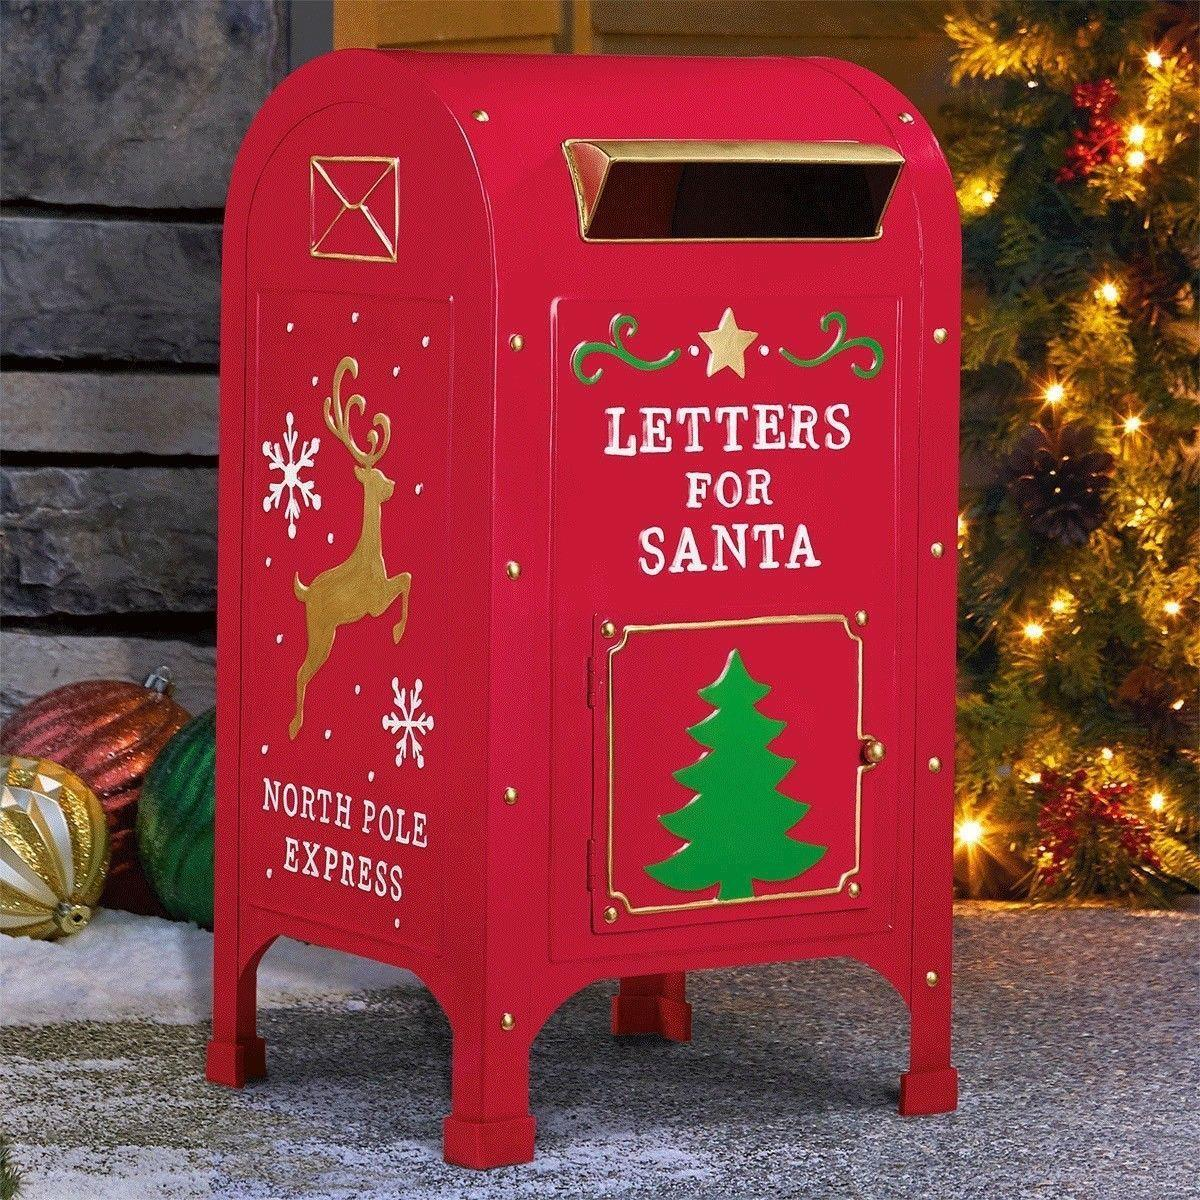 23 Quot 60cm Letters For Santa North Pole Express Metal Mail